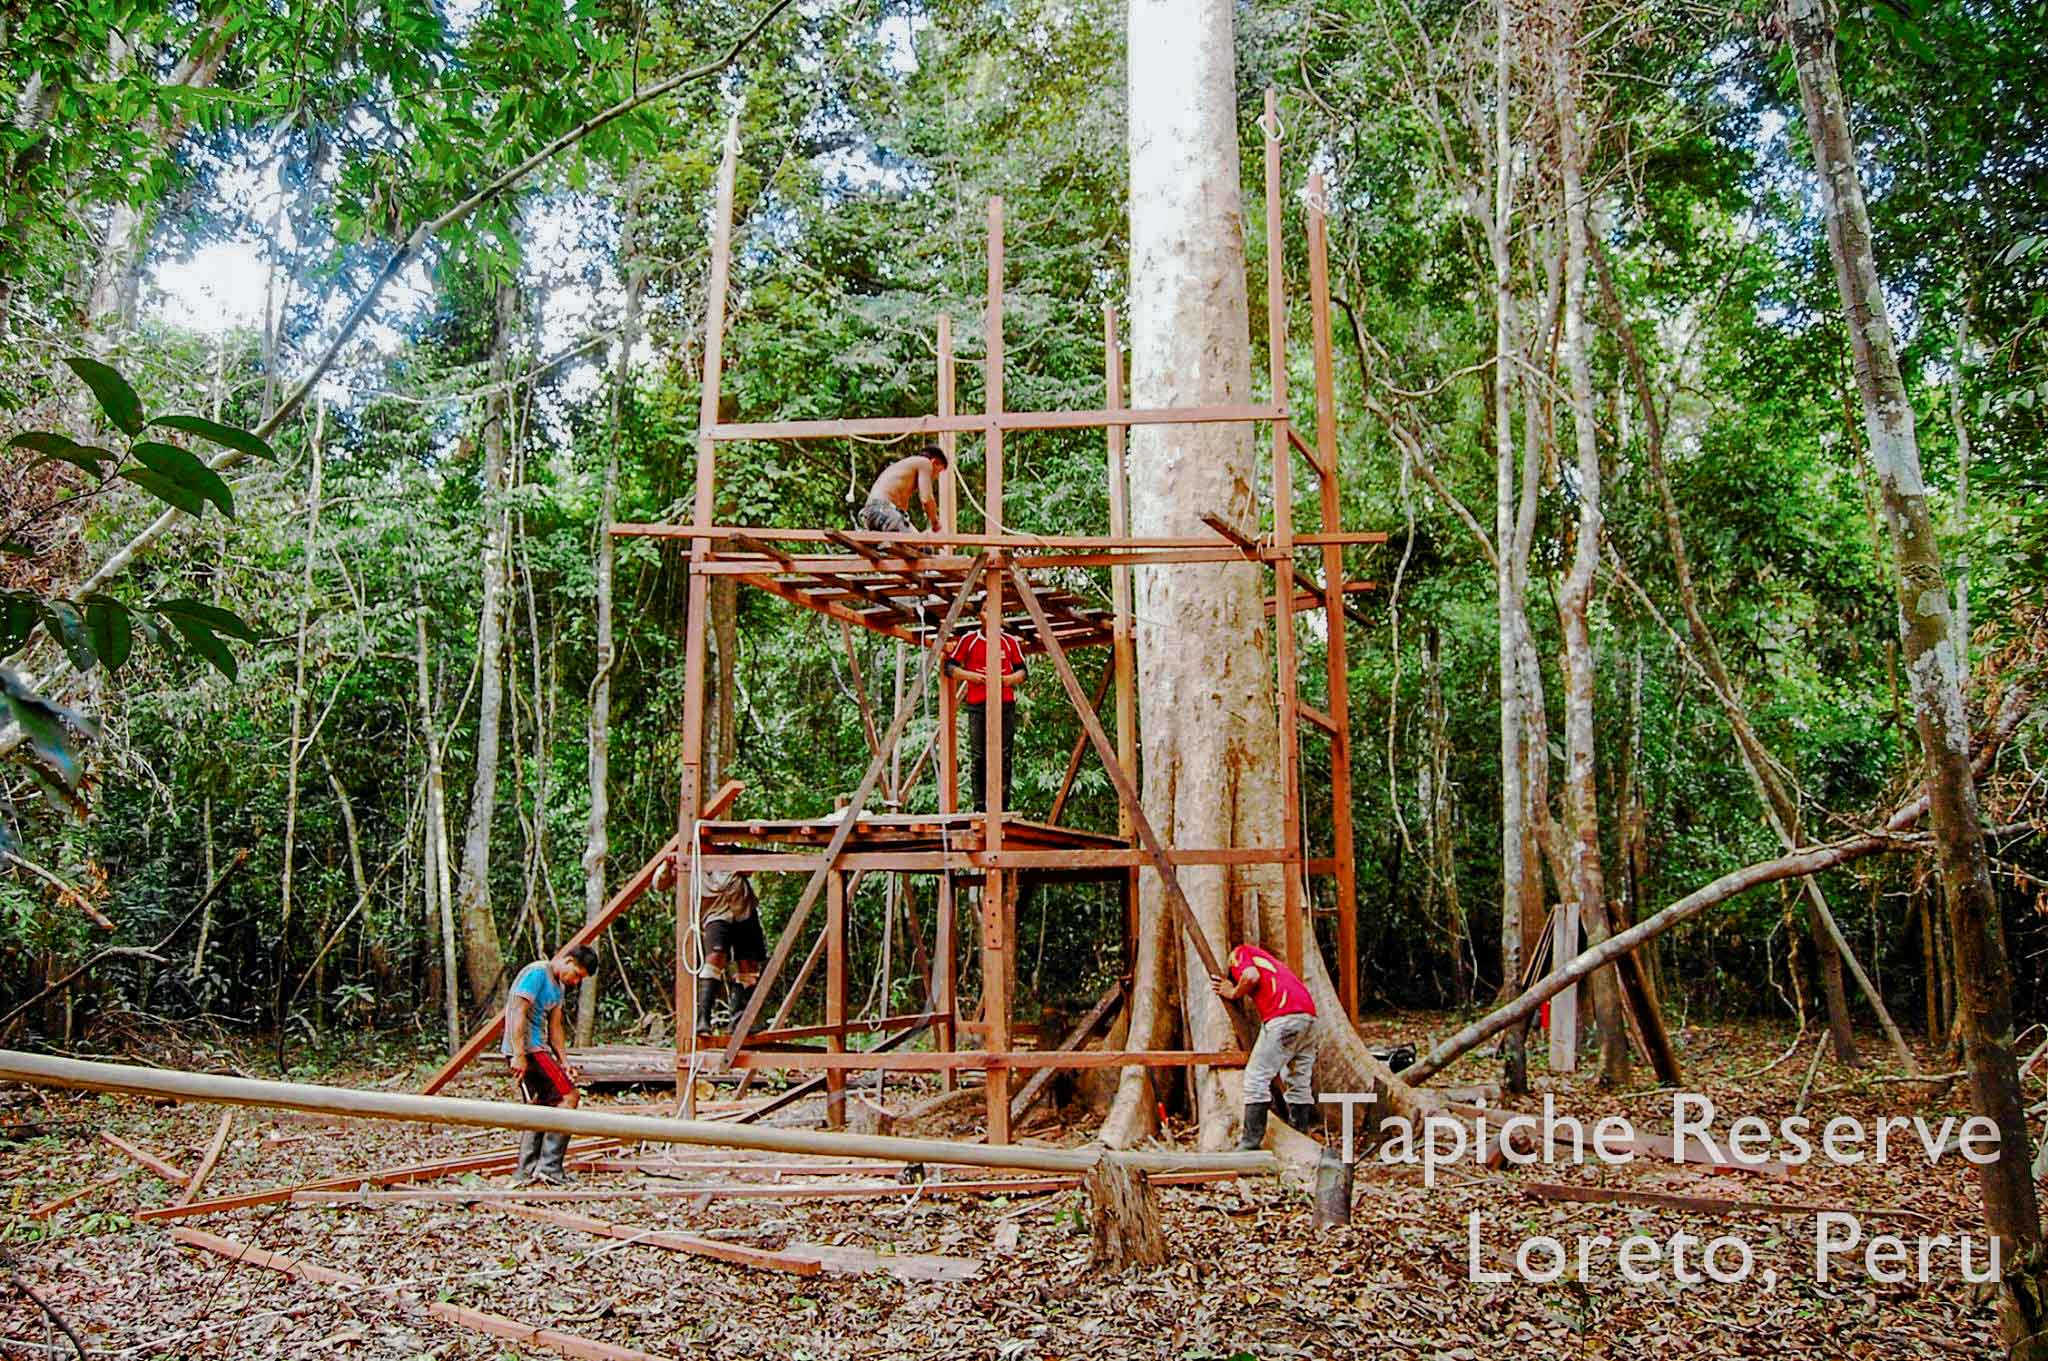 Tapiche-Amazon-Jungle-Tour-Peru-canopy-observation-tower-2.jpg